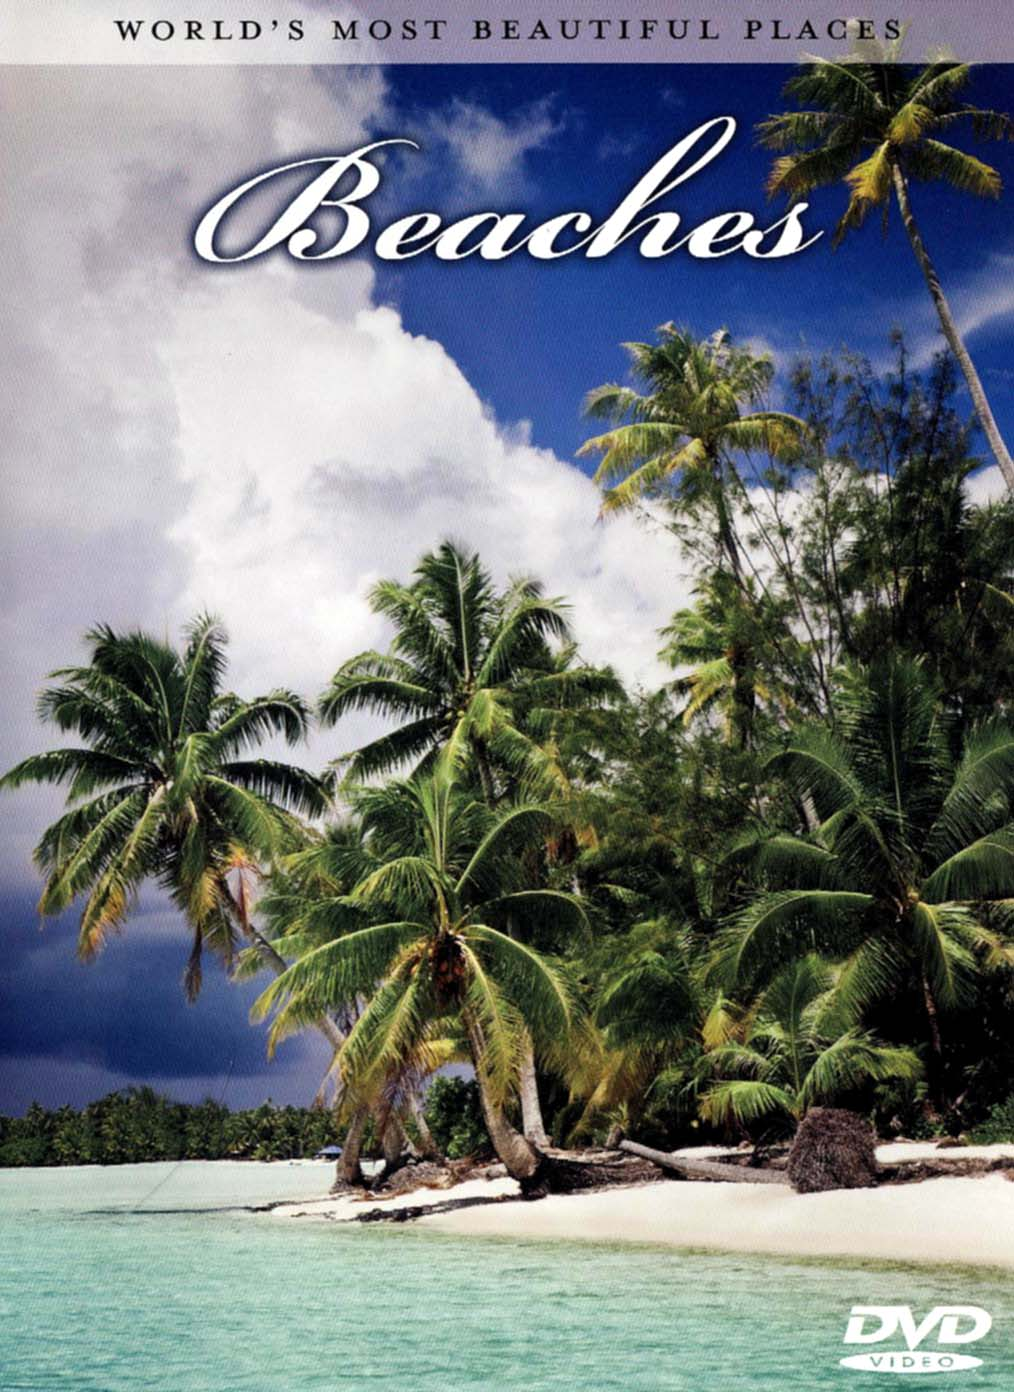 World's Most Beautiful Places: Beaches (2013)